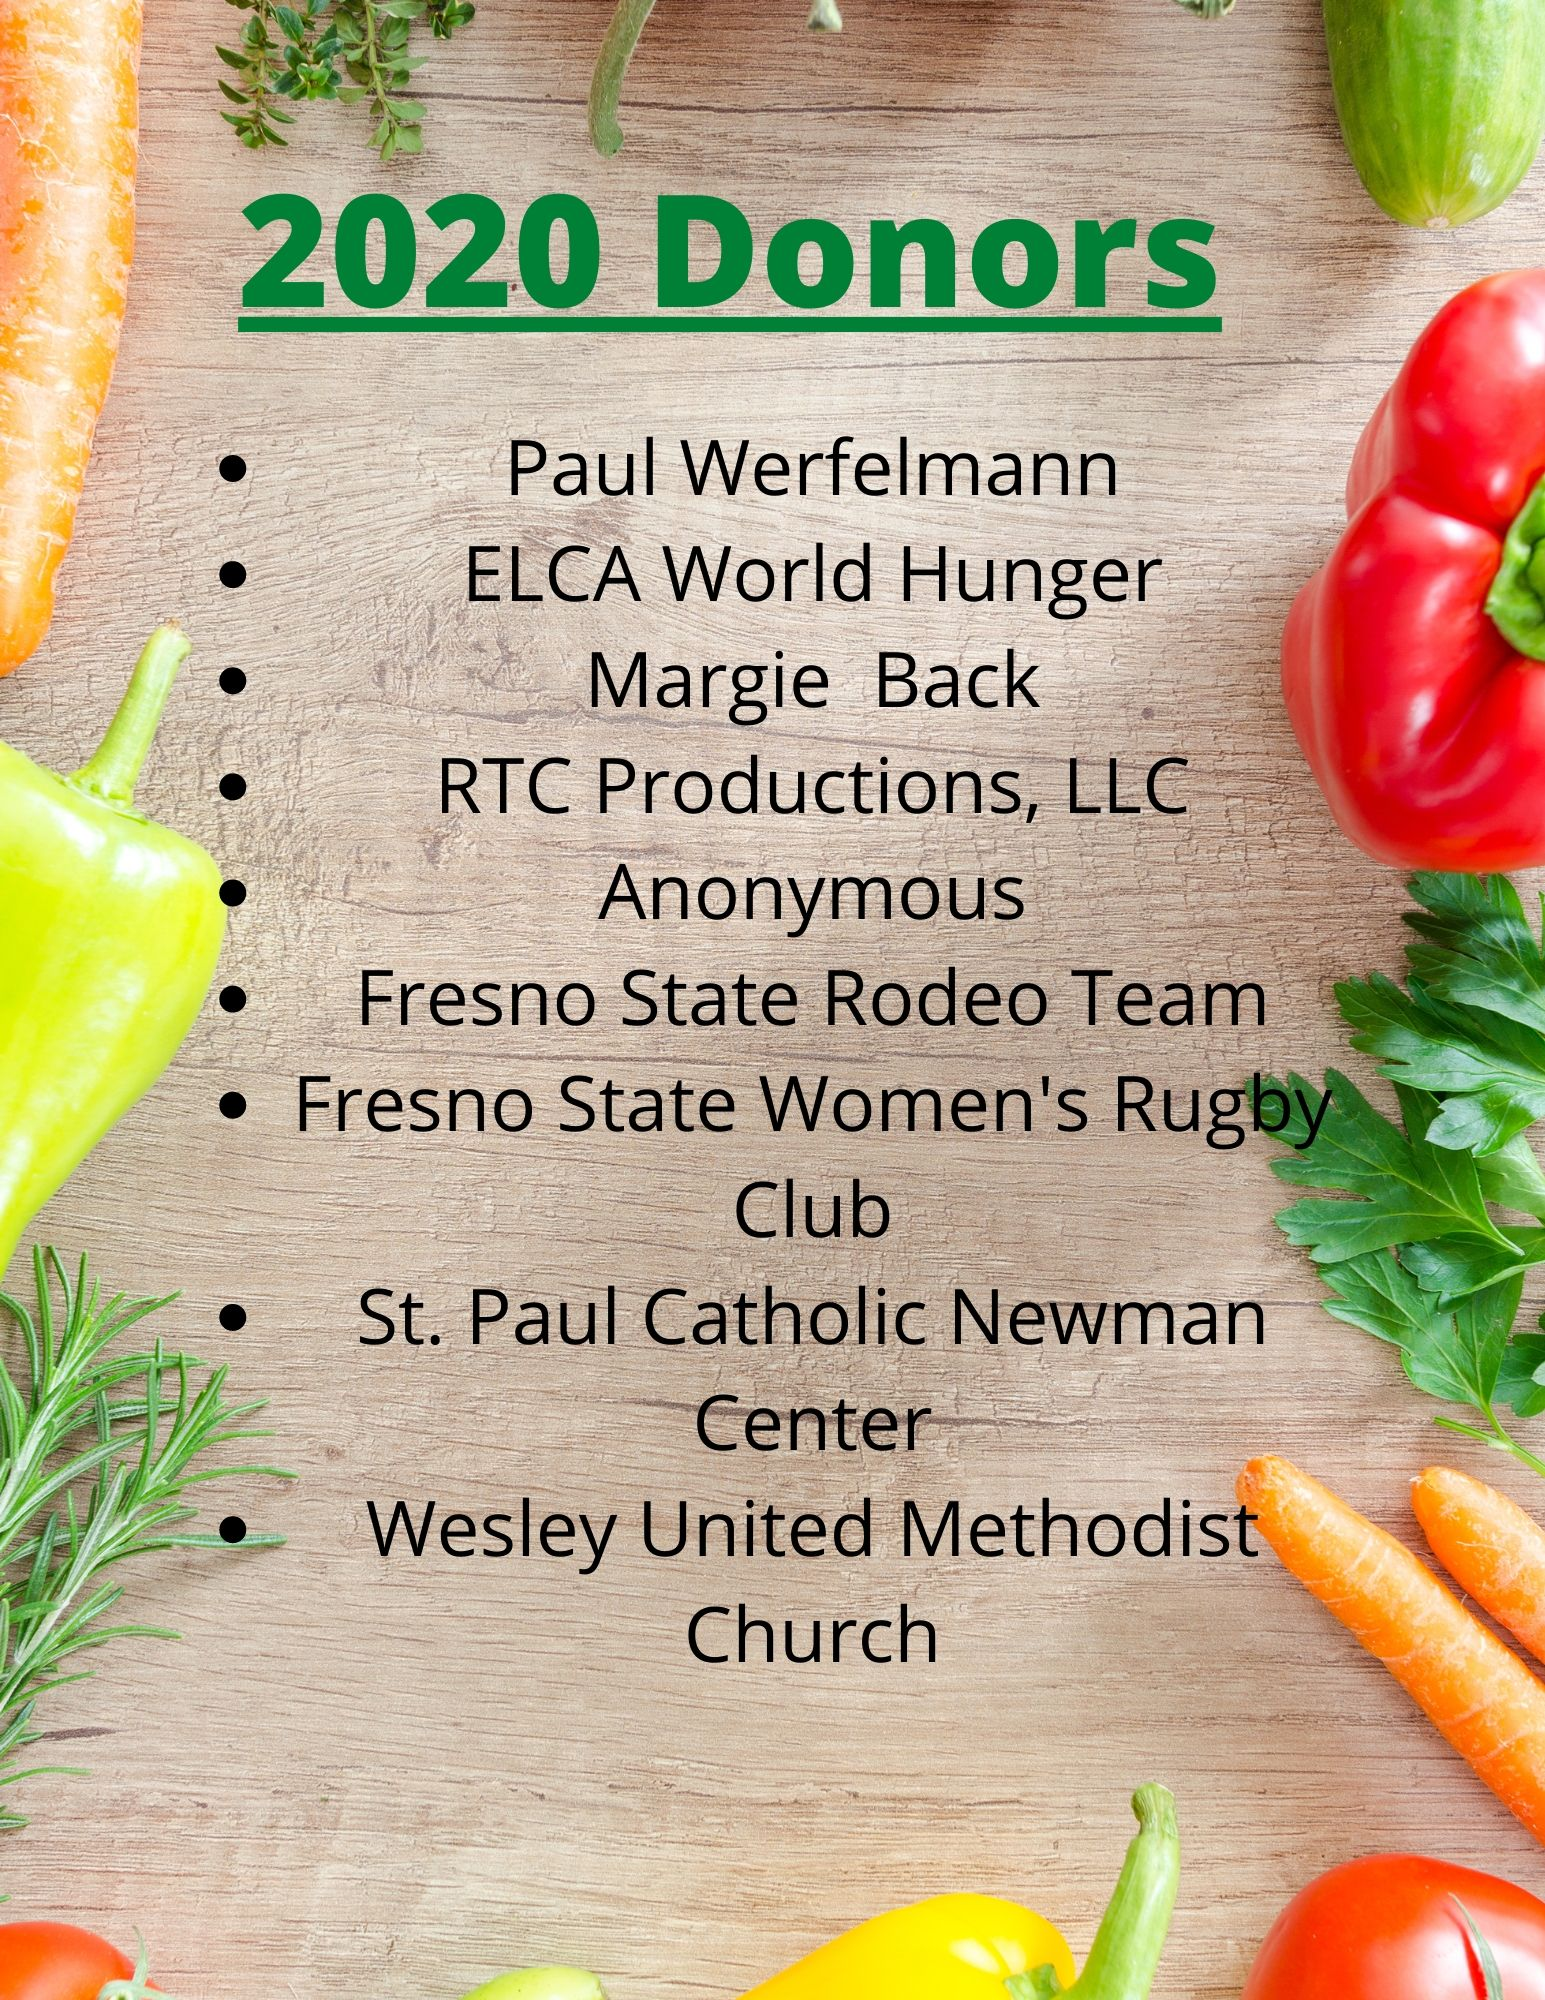 2020 Donors (4)